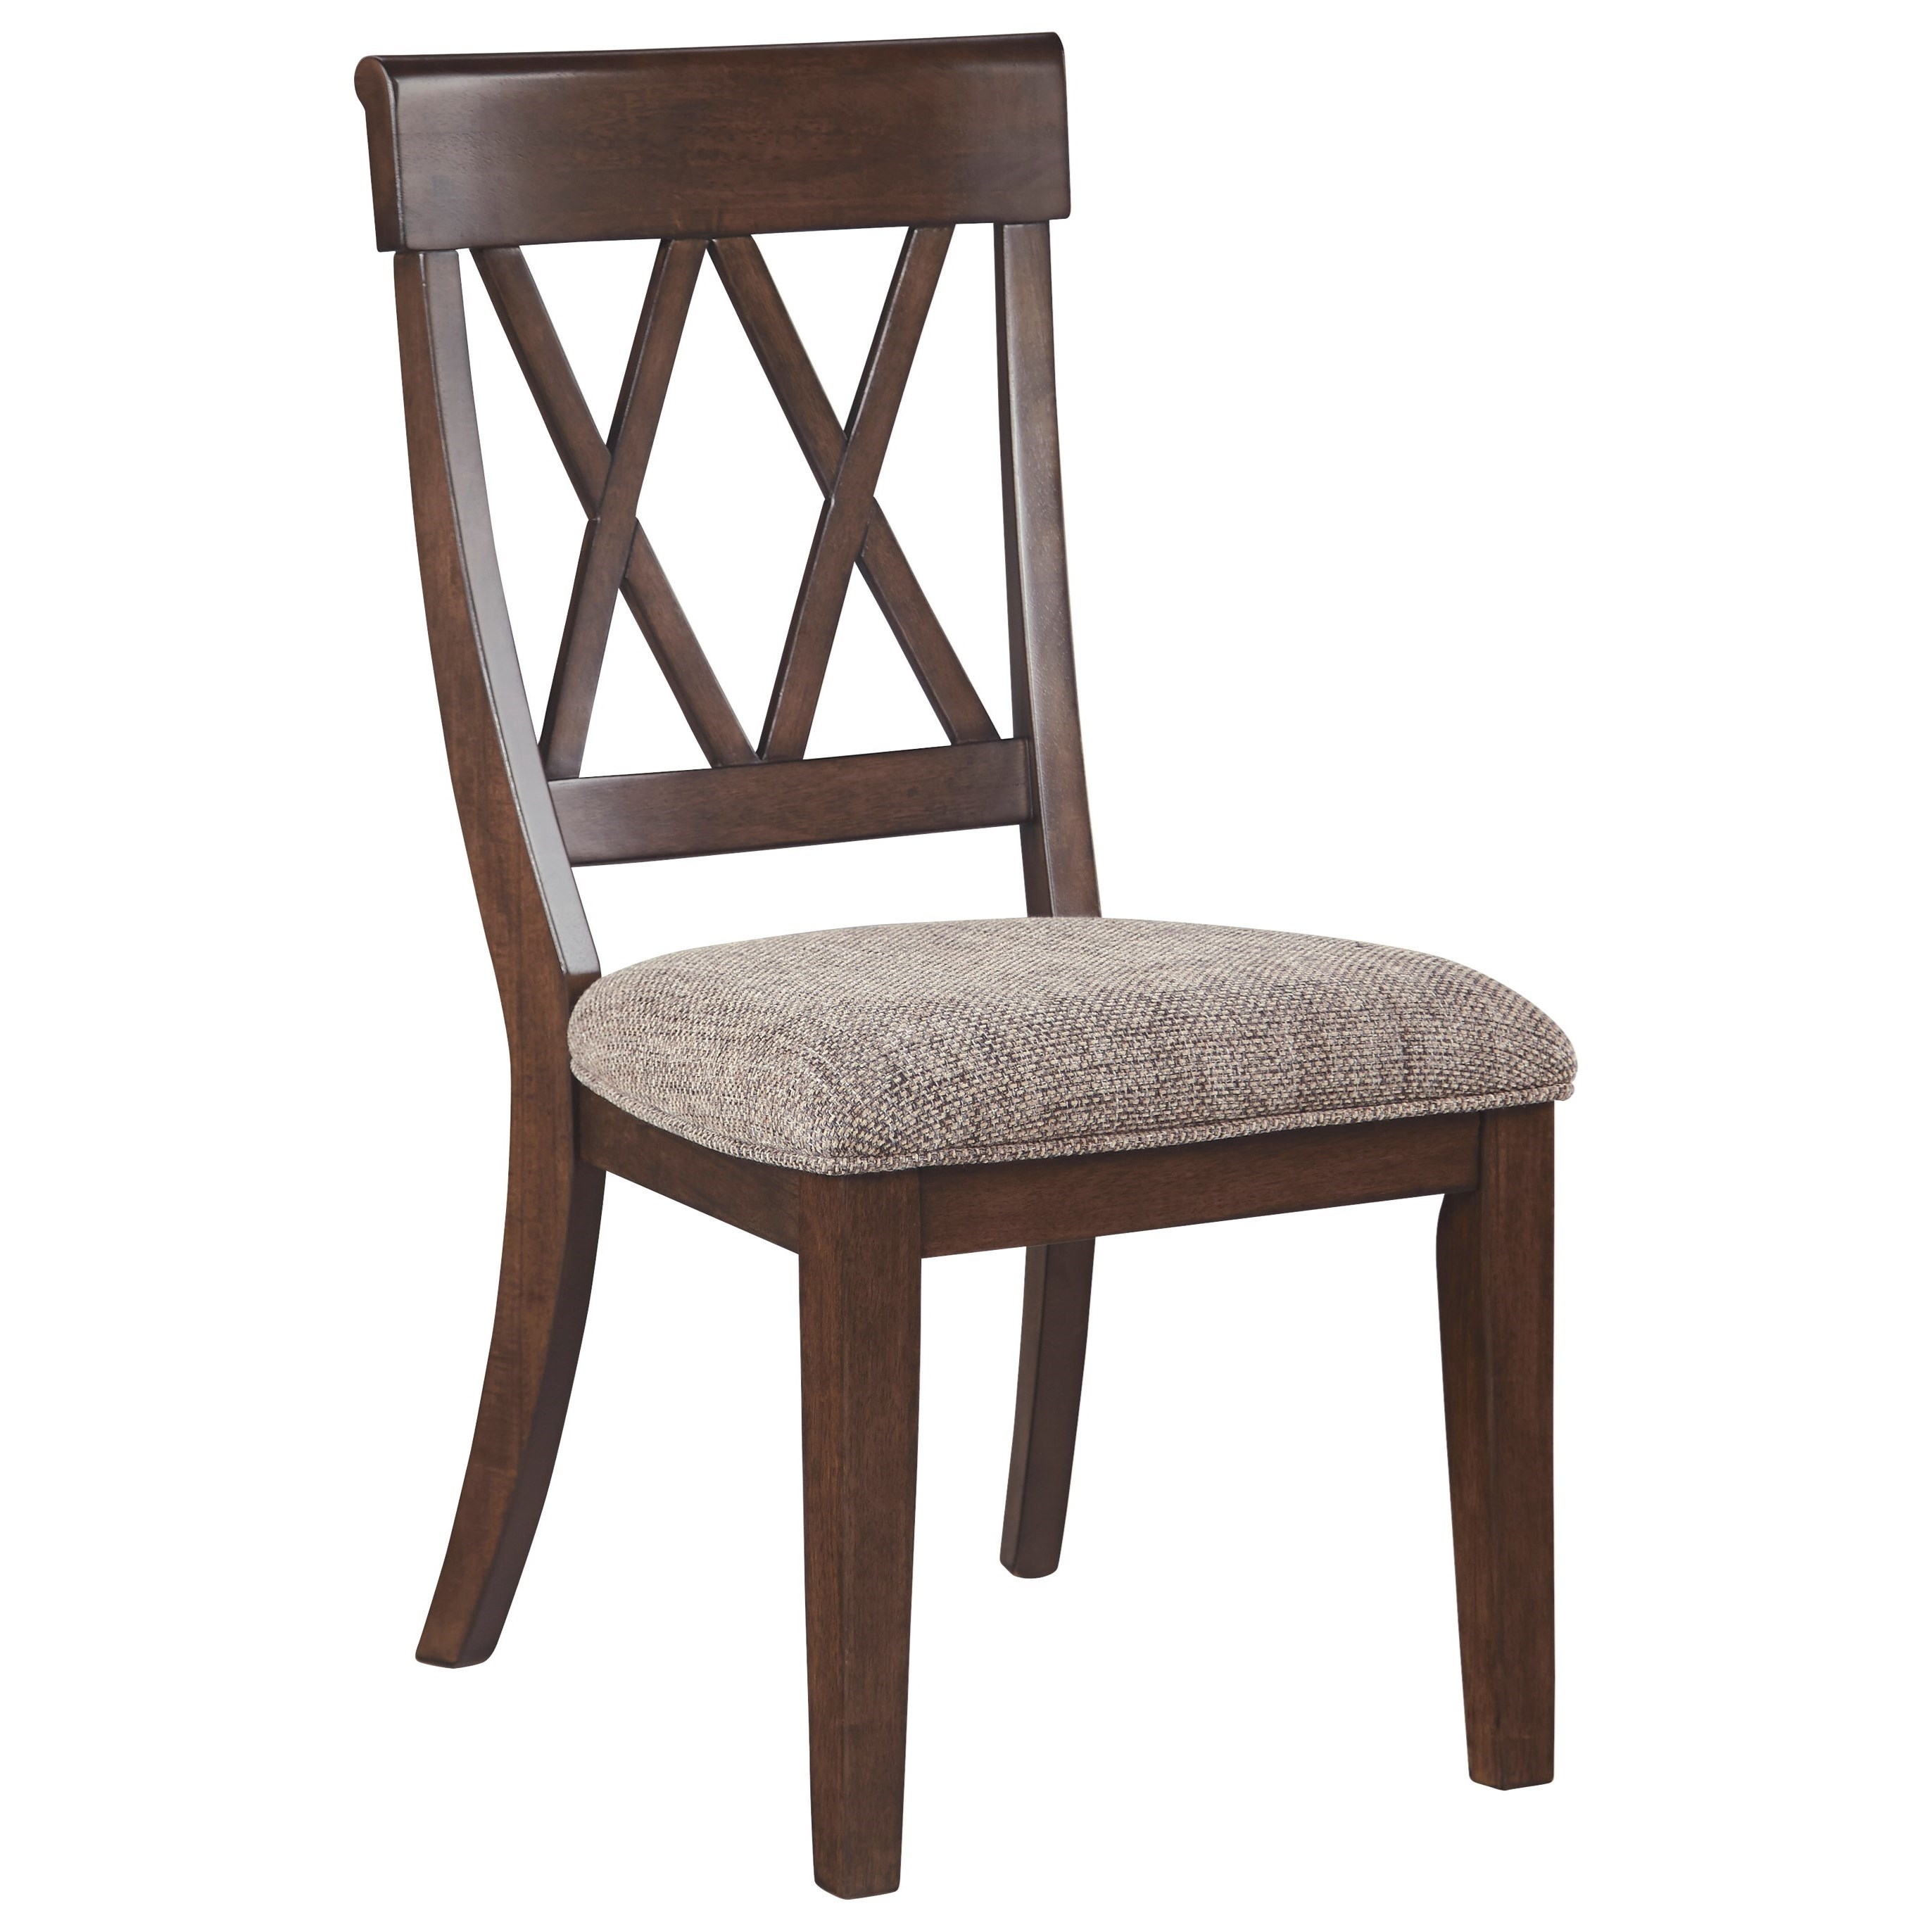 Brossling Dining Room Side Chair by Ashley Furniture at Lapeer Furniture & Mattress Center